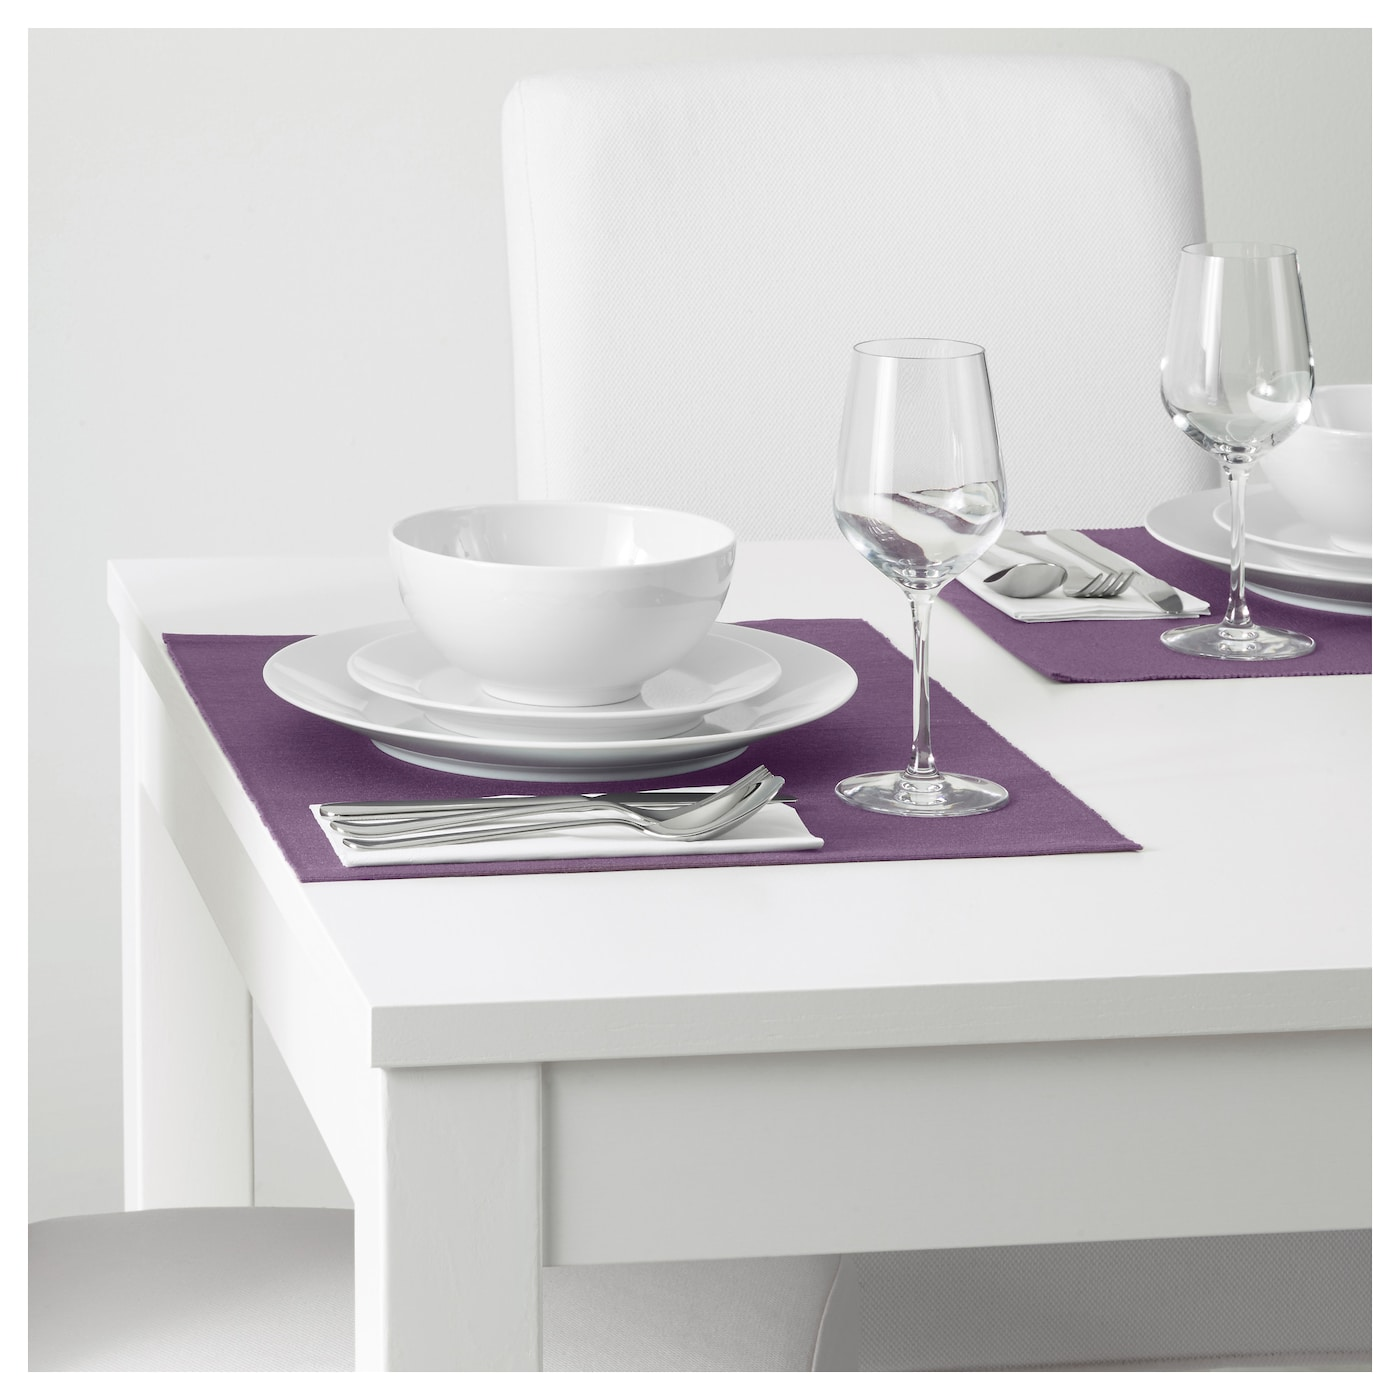 M rit set de table mauve 35x45 cm ikea for Set de table ikea